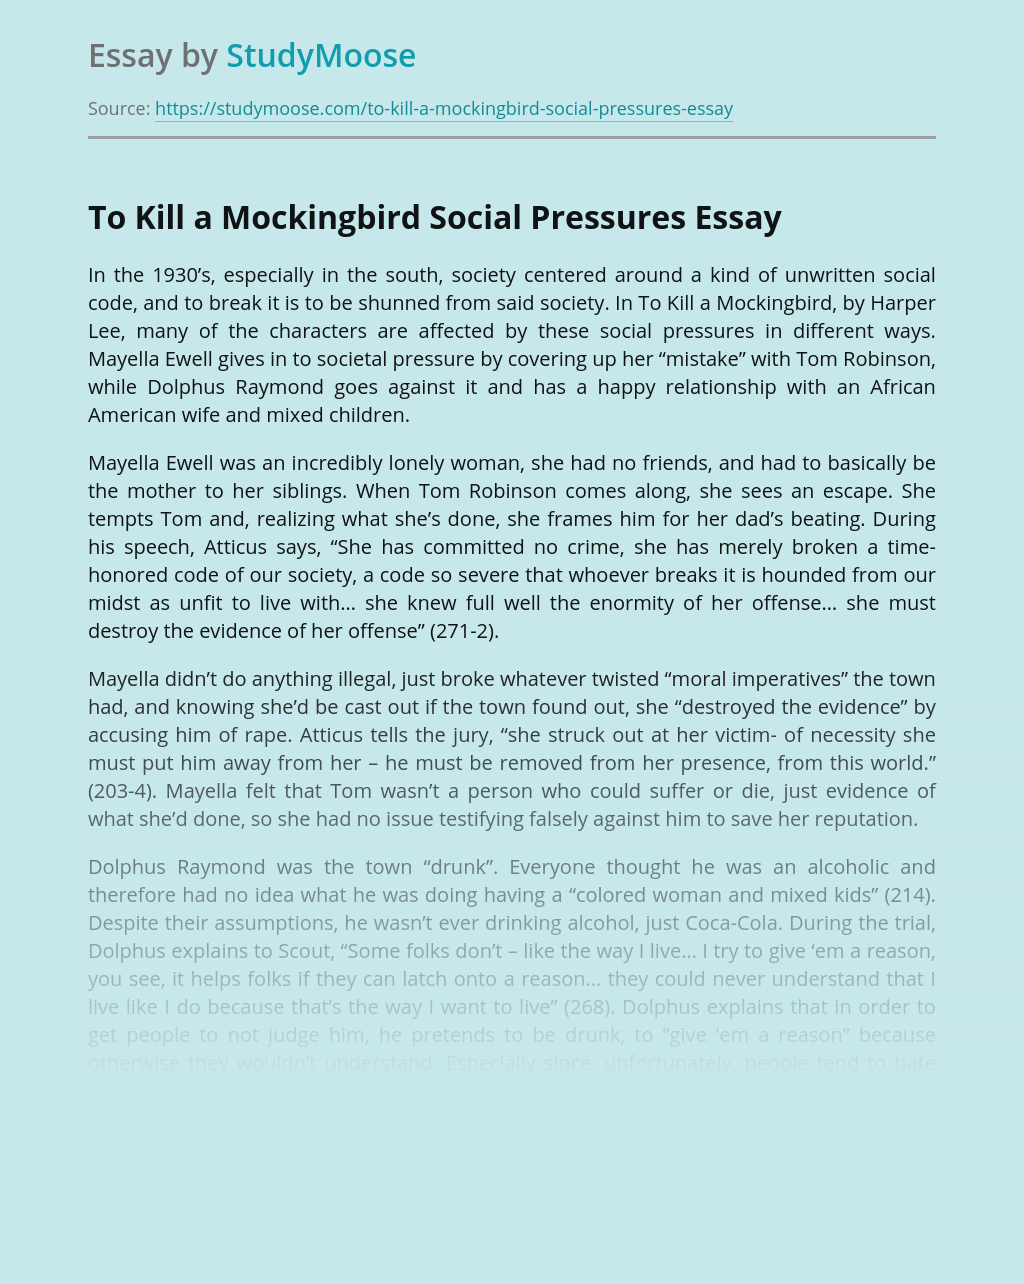 To Kill a Mockingbird Social Pressures